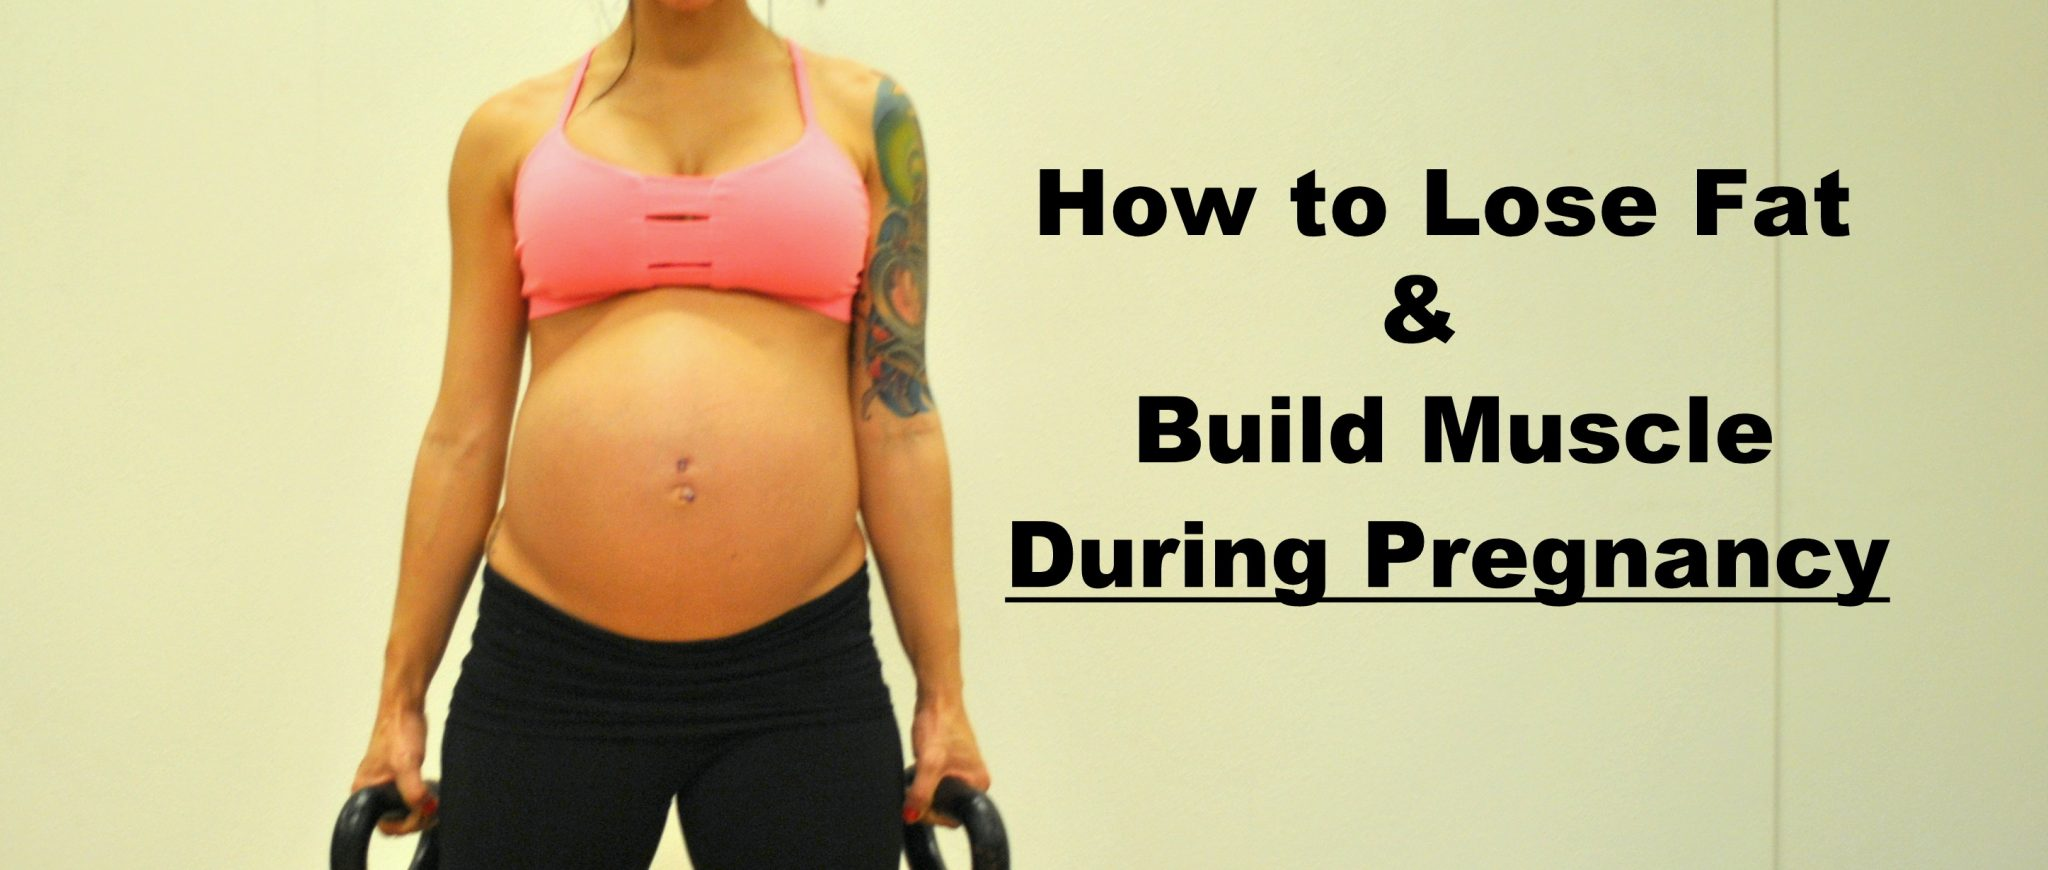 How to Burn Fat & Build Muscle During Pregnancy - Diary of a Fit Mommy